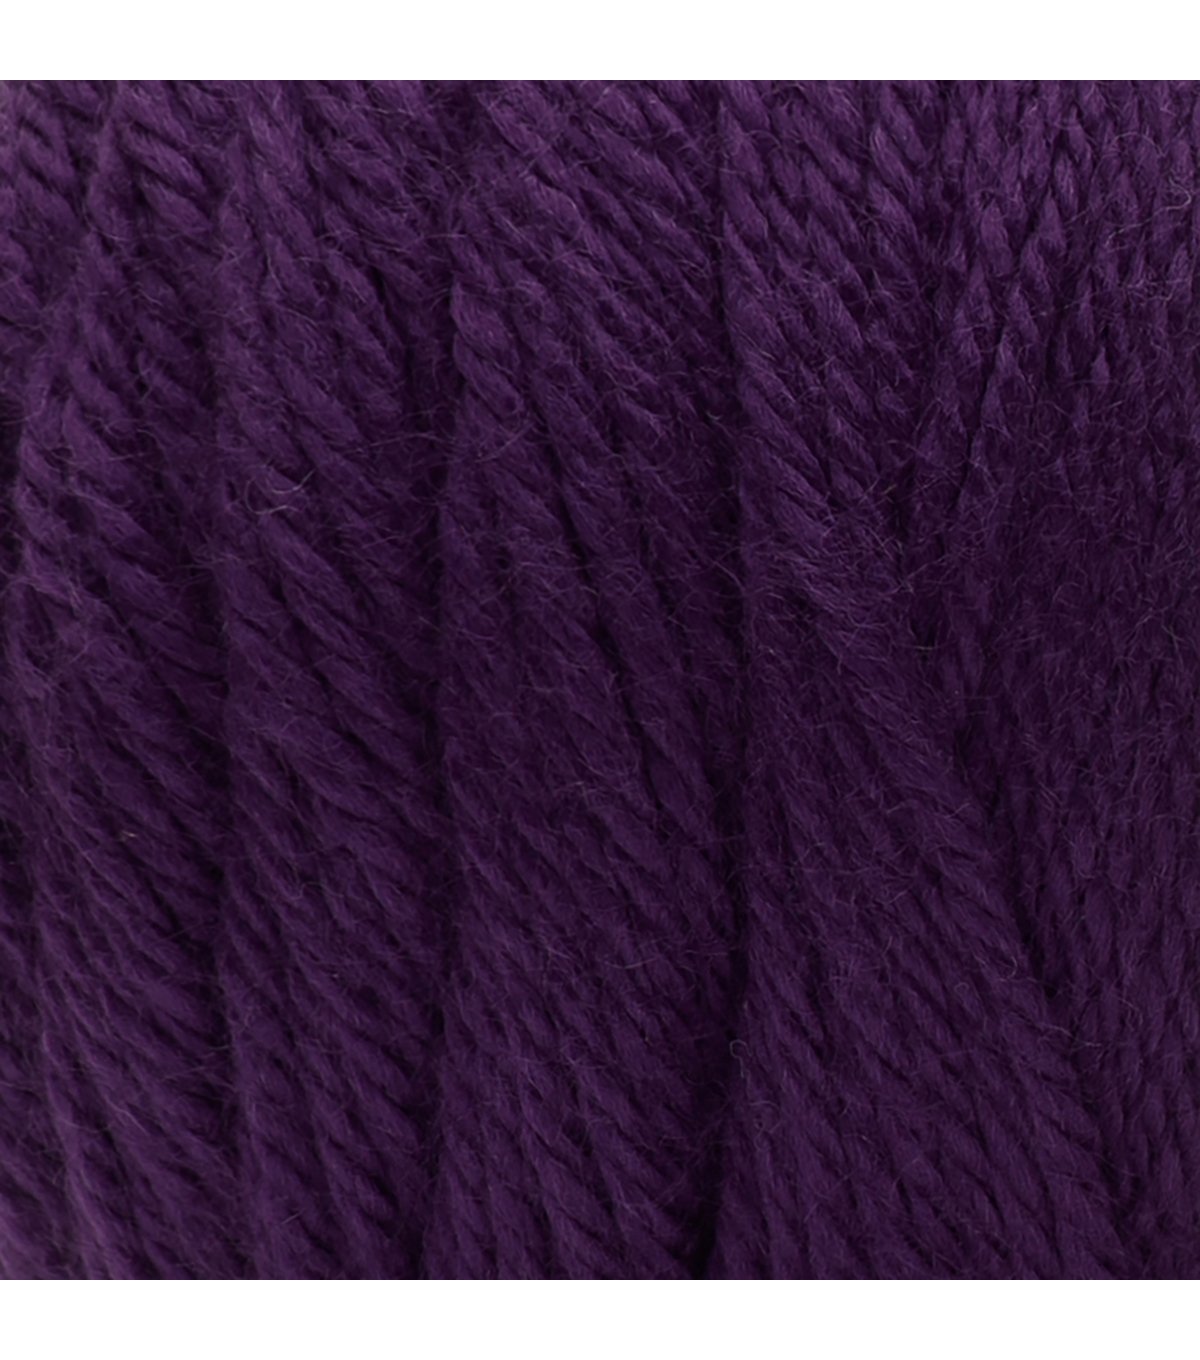 Caron Simply Soft Collection PLUM WINE  6 oz 100/% Acrylic Worsted Wt #4